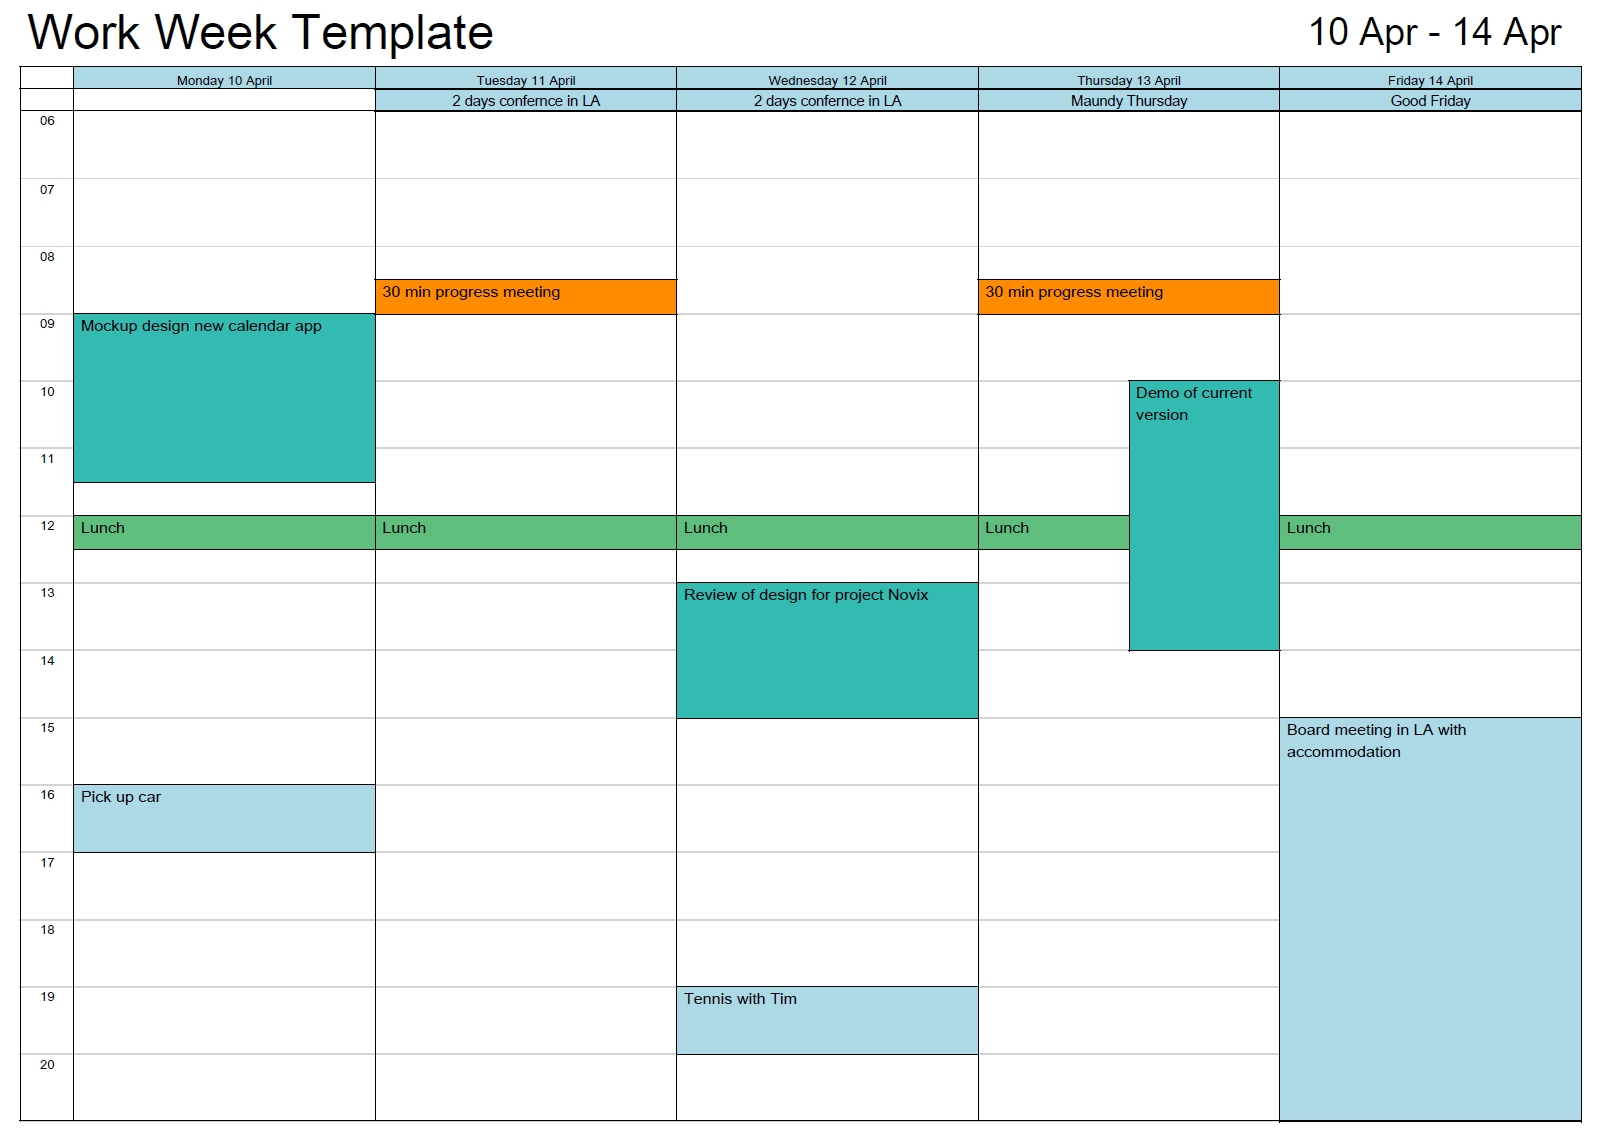 Outlook Printable Calendar In A4/A3 | Outlook Calendar Outlook Schedule 2Week Print